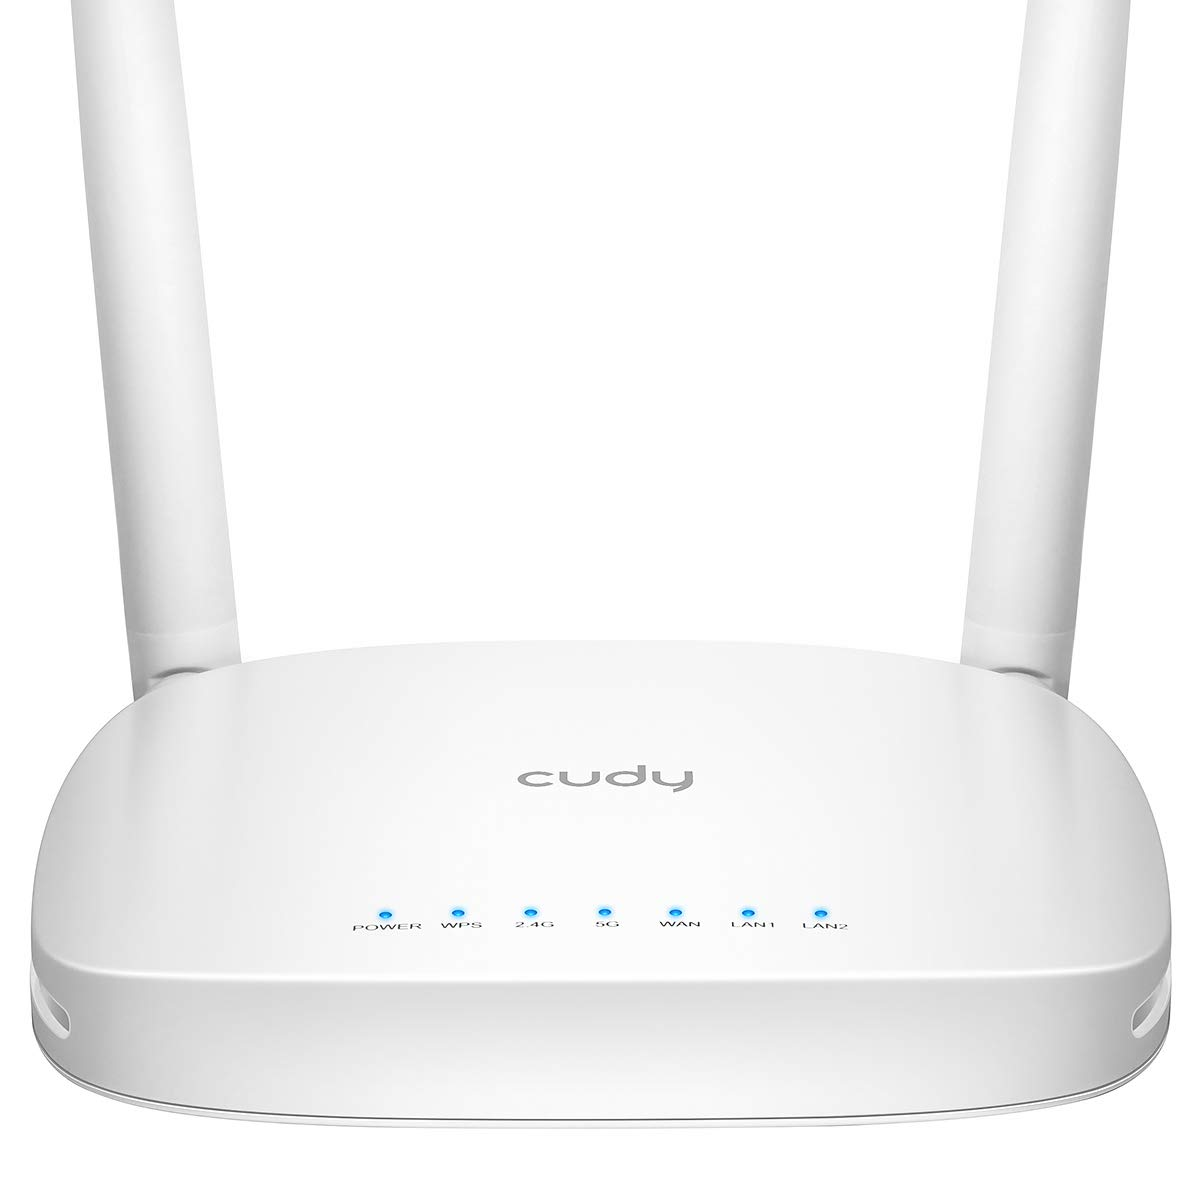 Cudy AC1200 Dual Band Smart WiFi Router, 300 Mbps (2.4GHz)+867 Mbps (5GHz), Guest Network, QoS, Compatible with Amazon Alexa, Range Extender Mode, IPV6 (WR1000) by Cudy